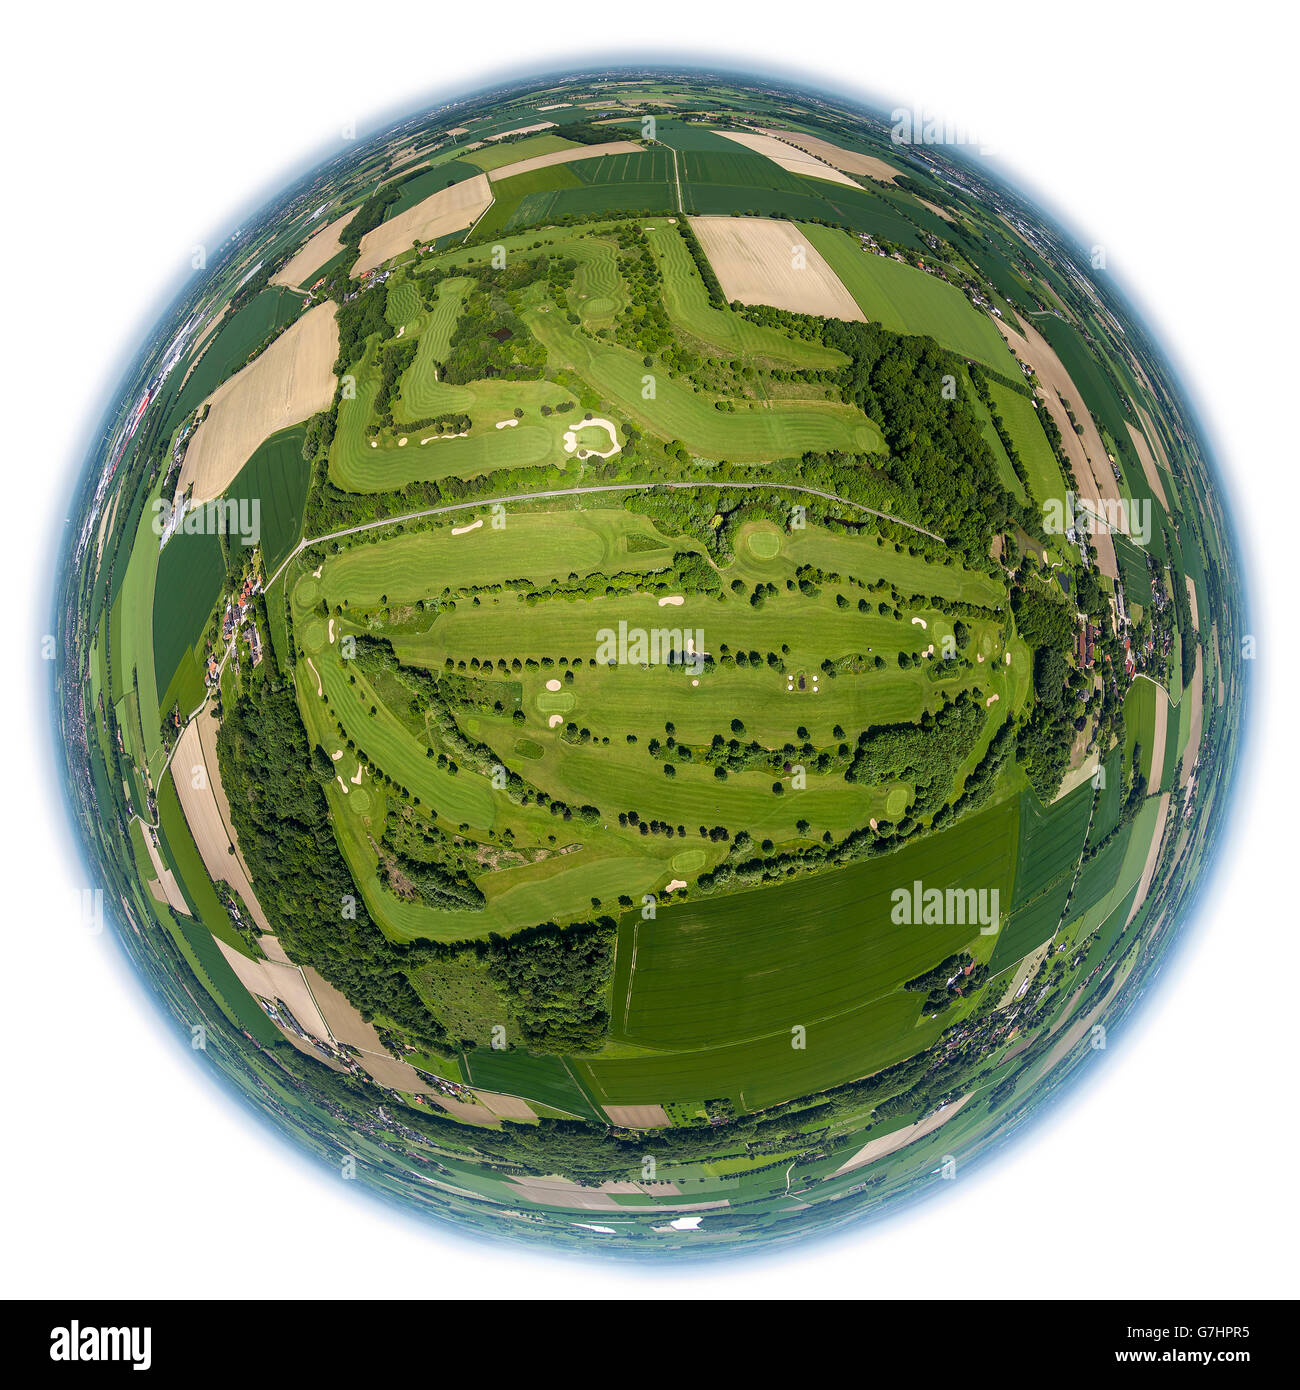 Aerial view, fisheye optics, fisheye lens, overview of the golf course Hamm, Golfclub Hamm Drechen, greens, bunkers, - Stock Image